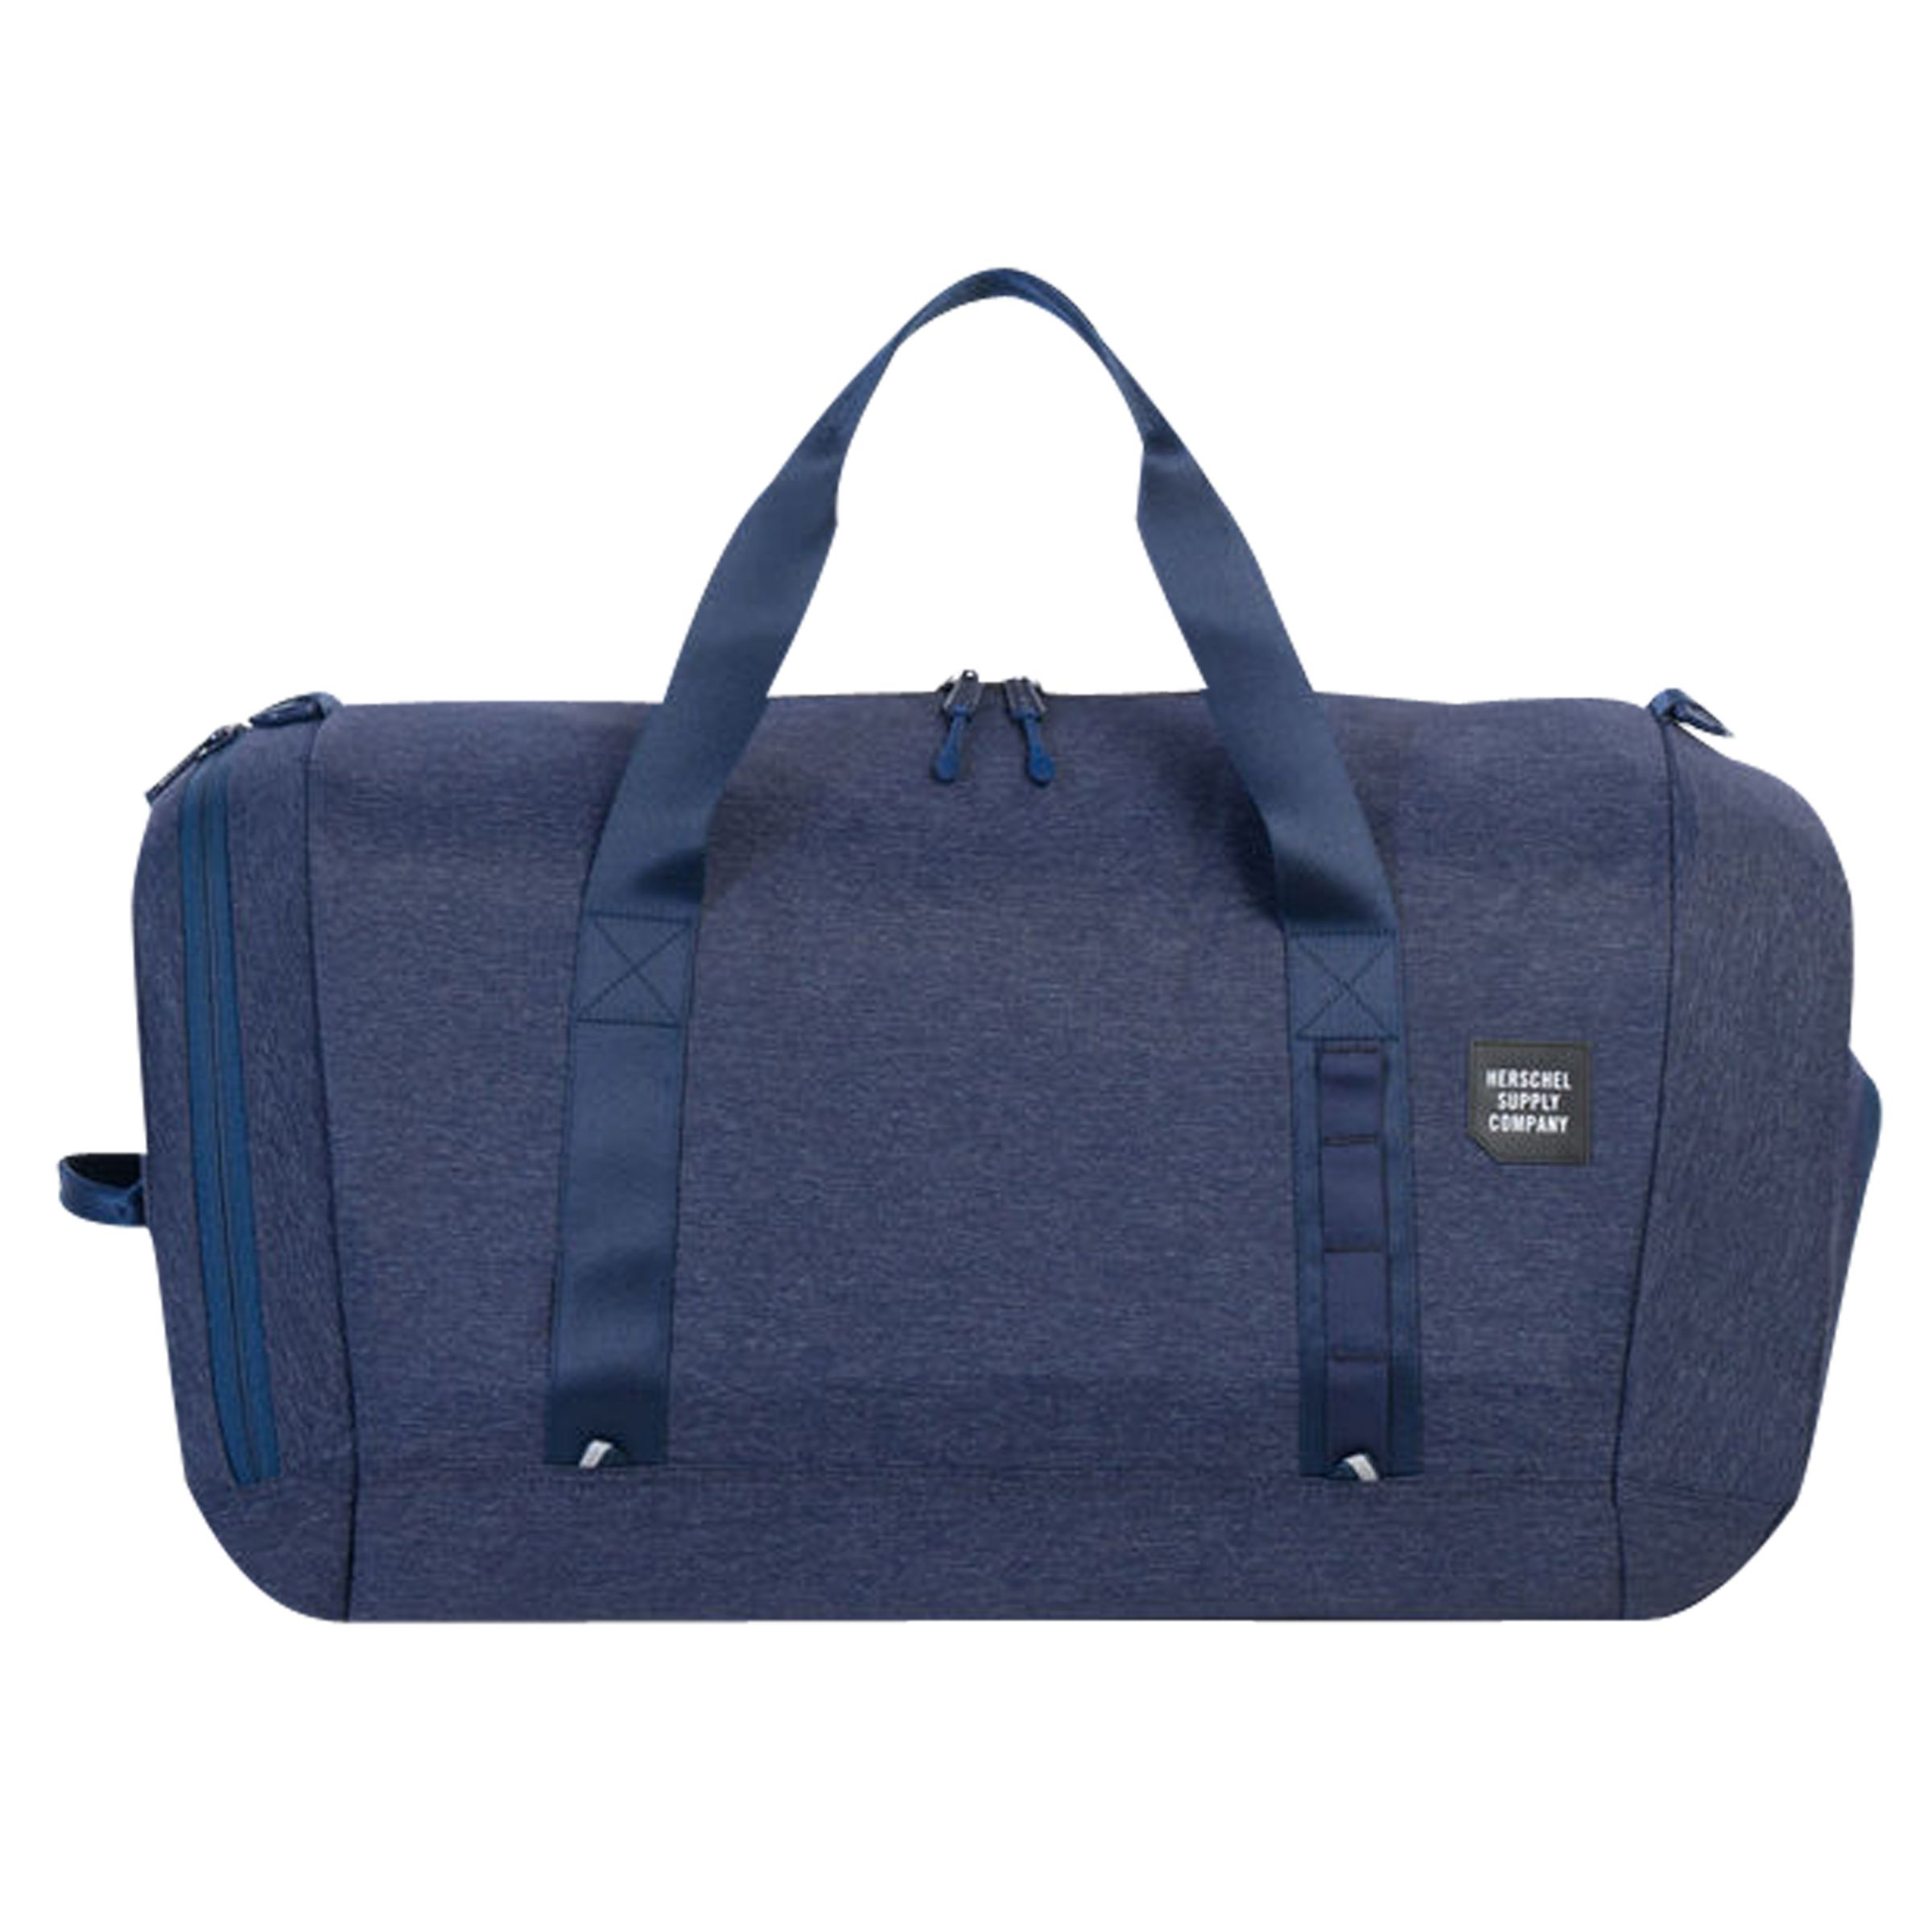 Herschel Supply Co. Herschel Supply Co. Gorge Holdall, Denim